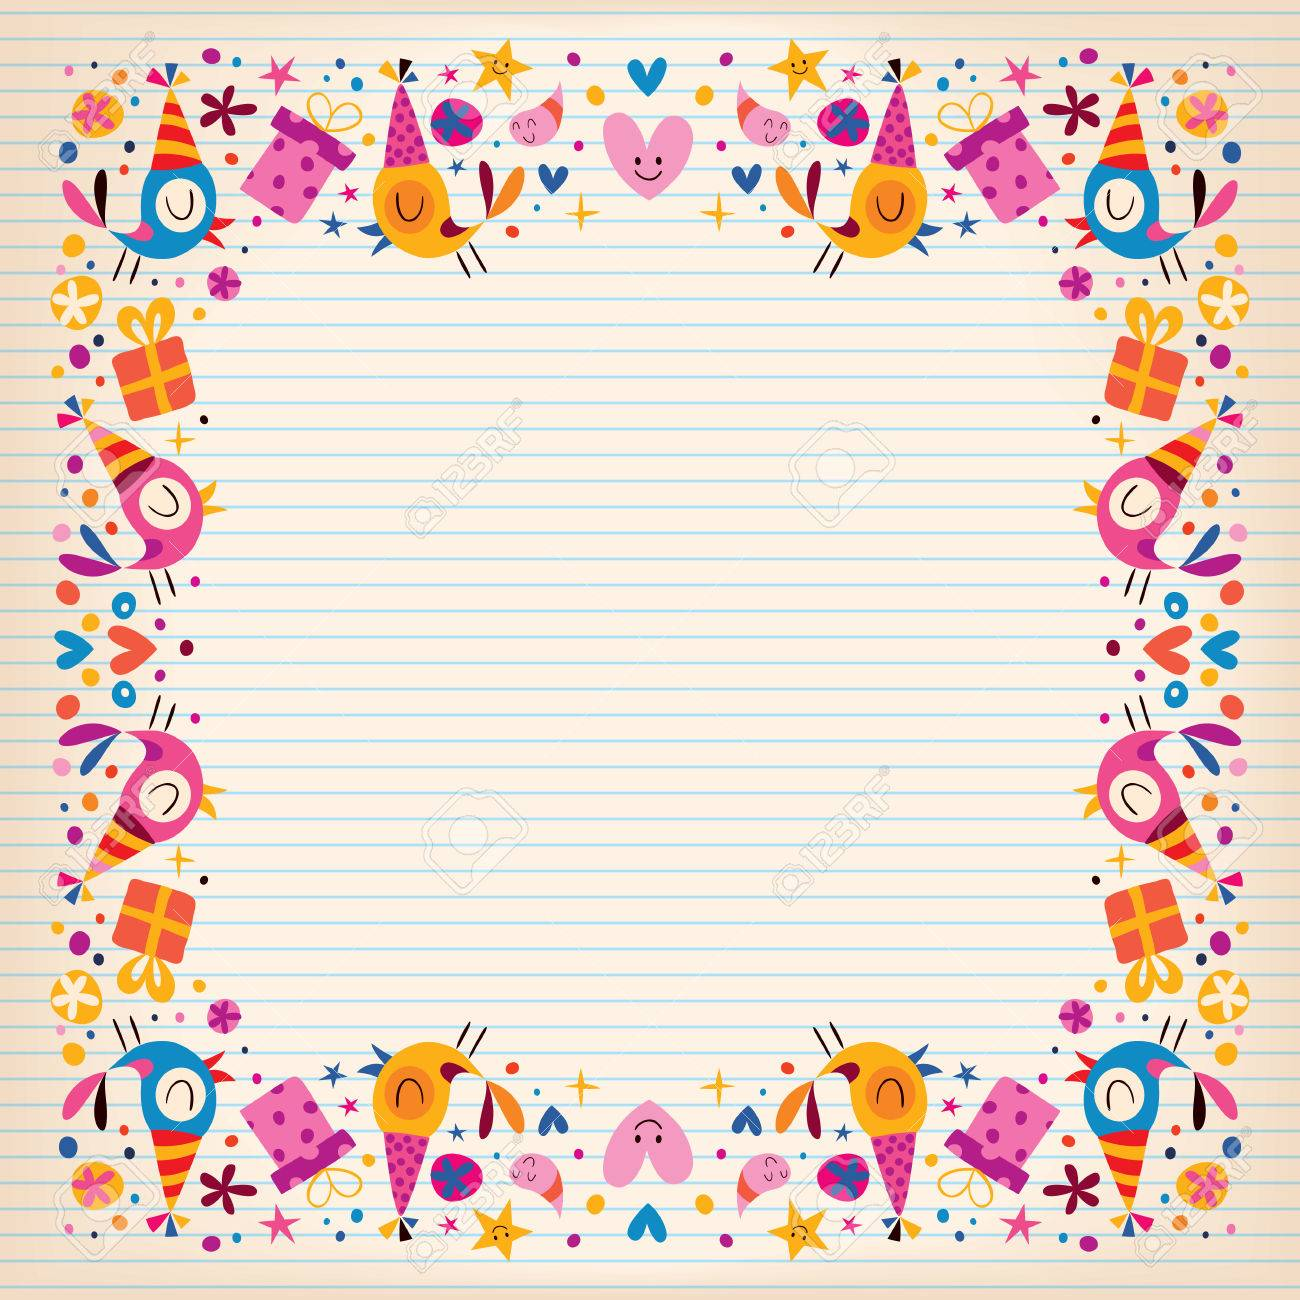 free birthday border paper ; 32044780-happy-birthday-border-lined-paper-card-with-space-for-text